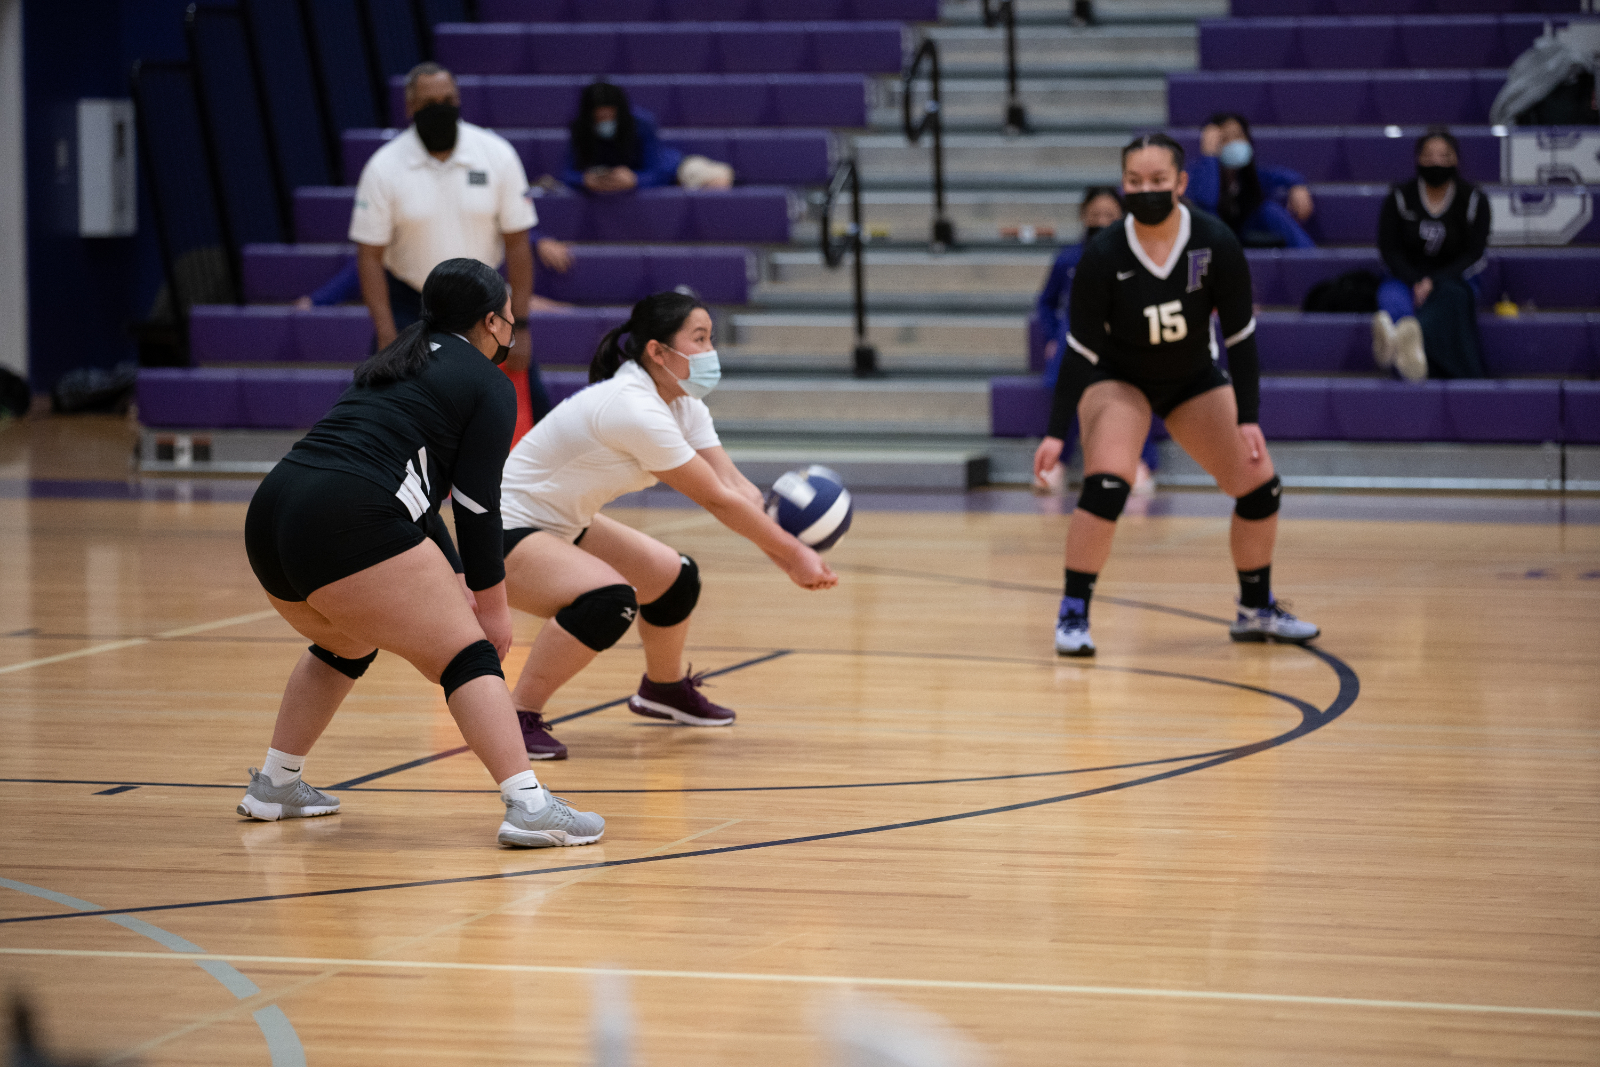 Foster Volleyball